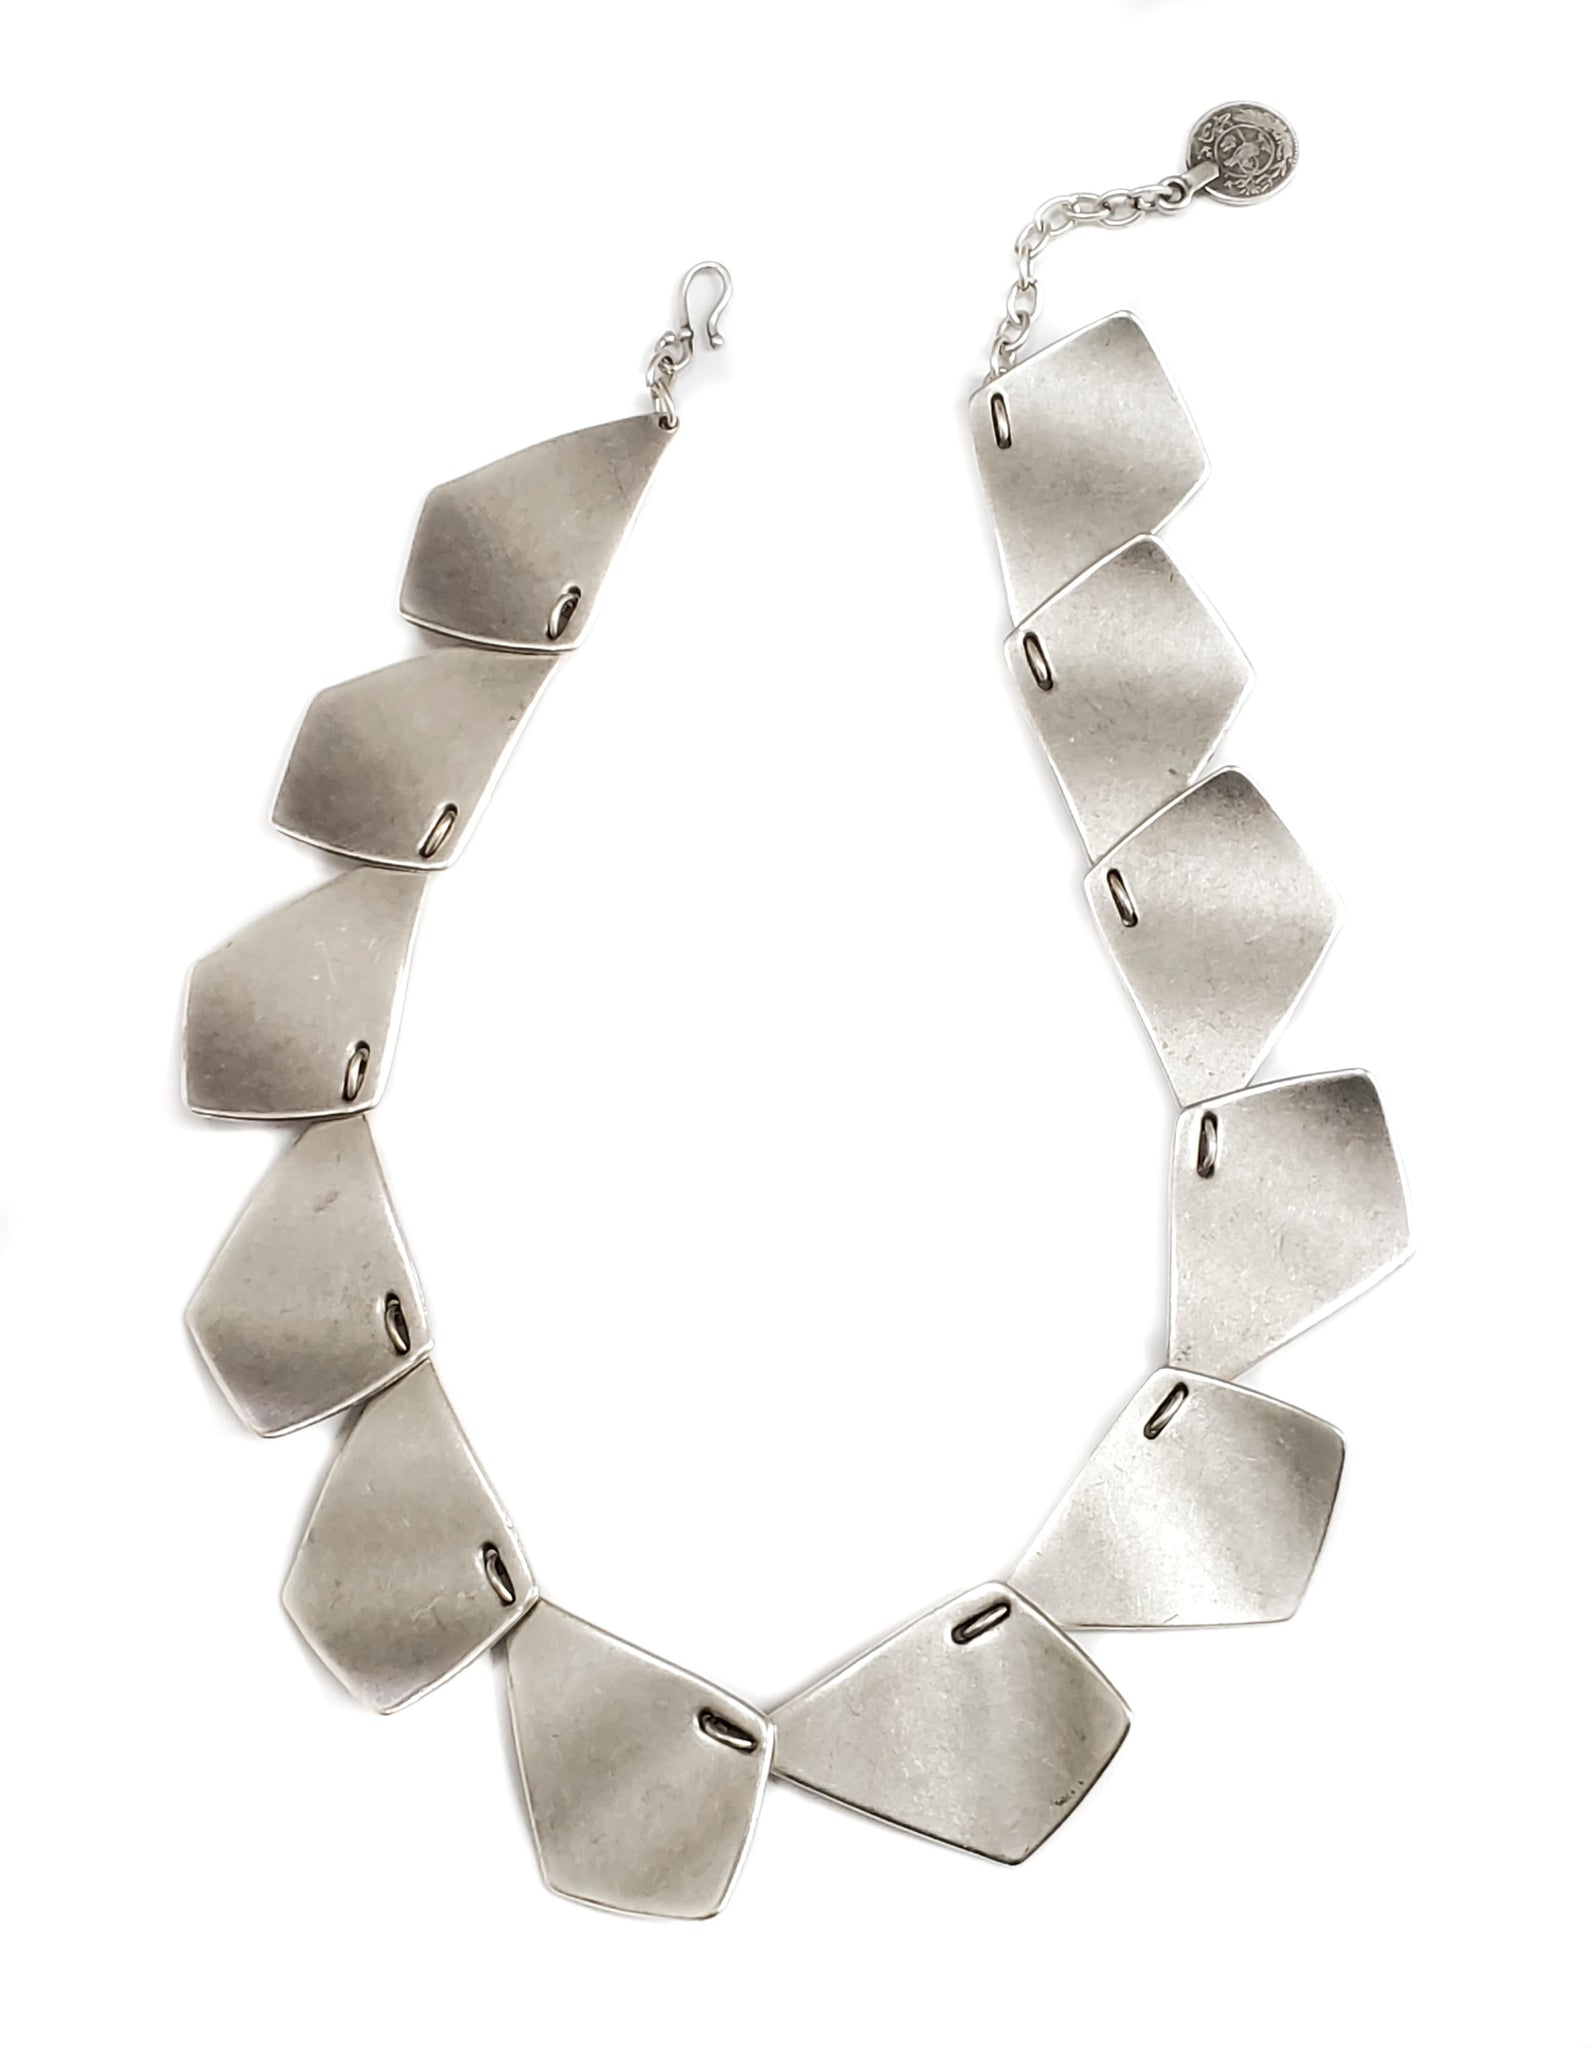 Pewter Necklace - SKU# 1546